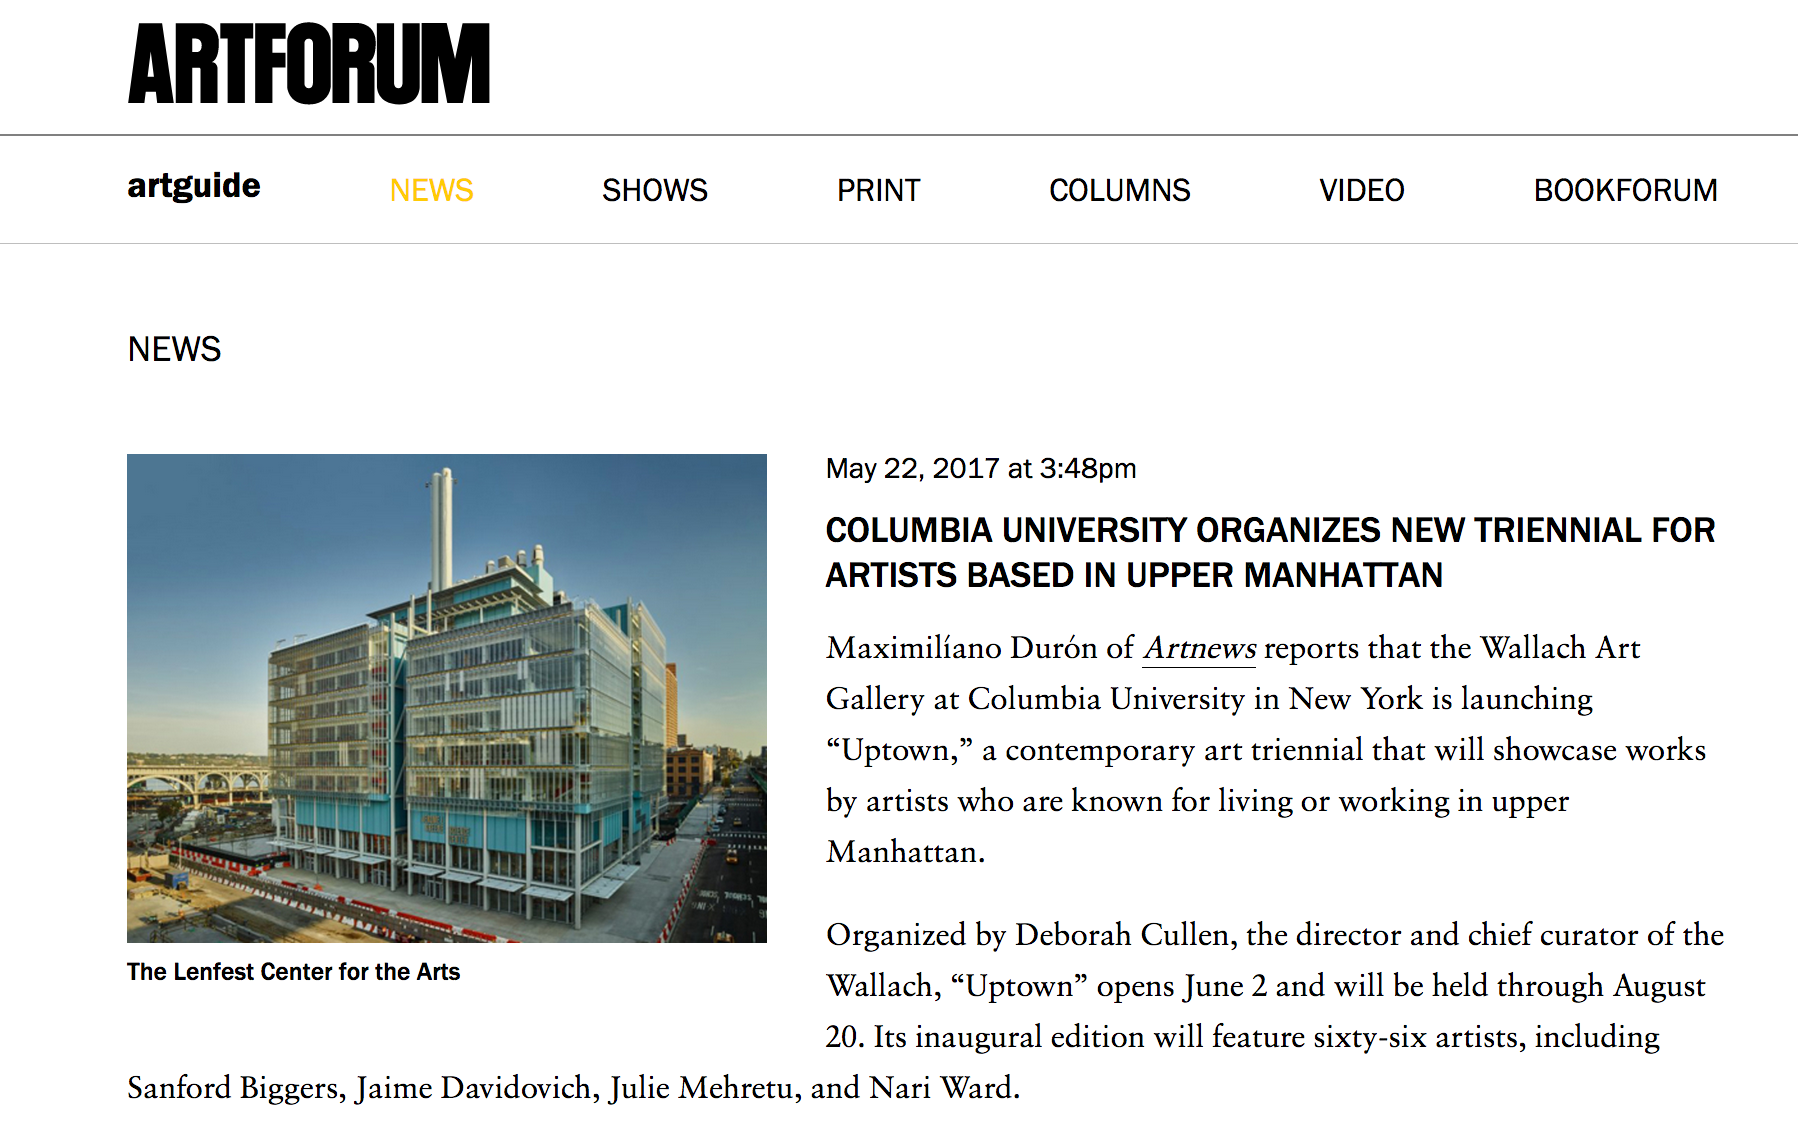 Columbia University Organizes New Triennial for Artists Based in Upper Manhattan - Artforum - May 22, 2017